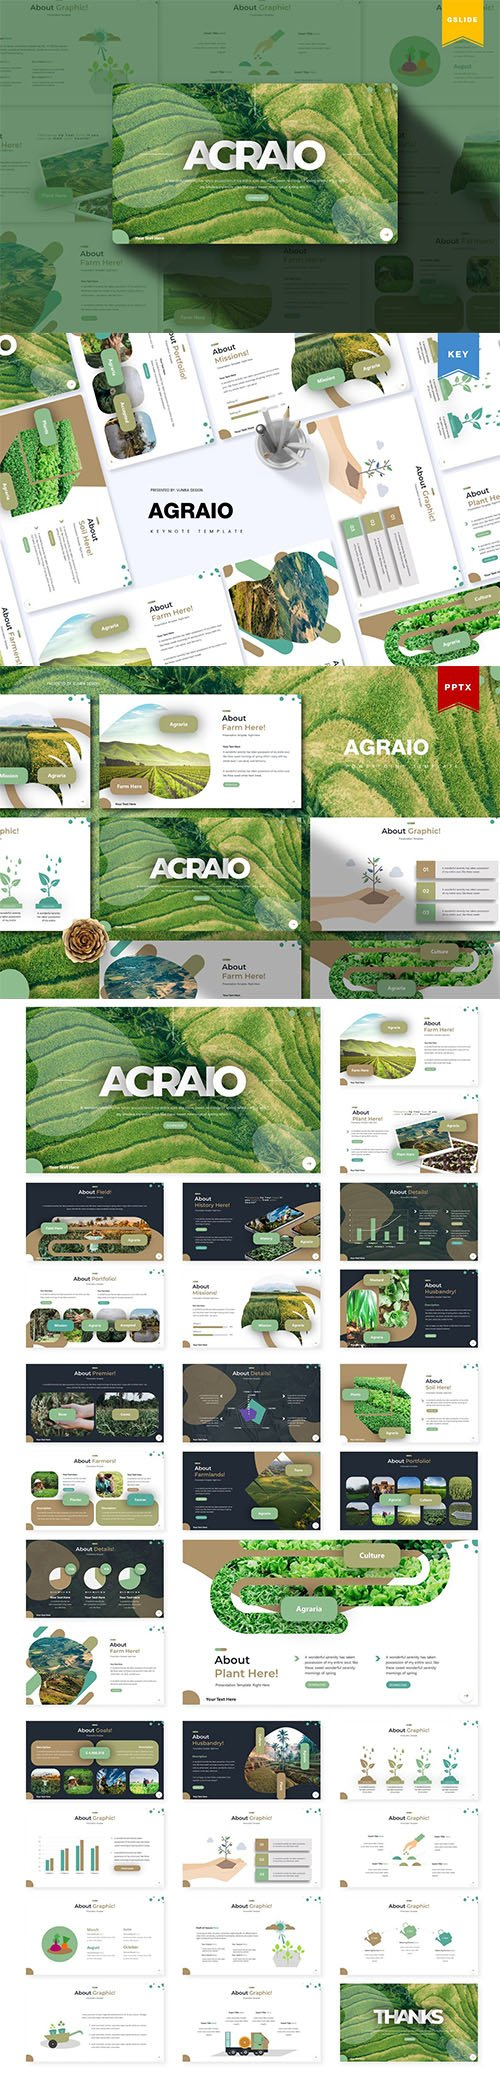 Agraio - Powerpoint, Keynote and Google Slides Templates